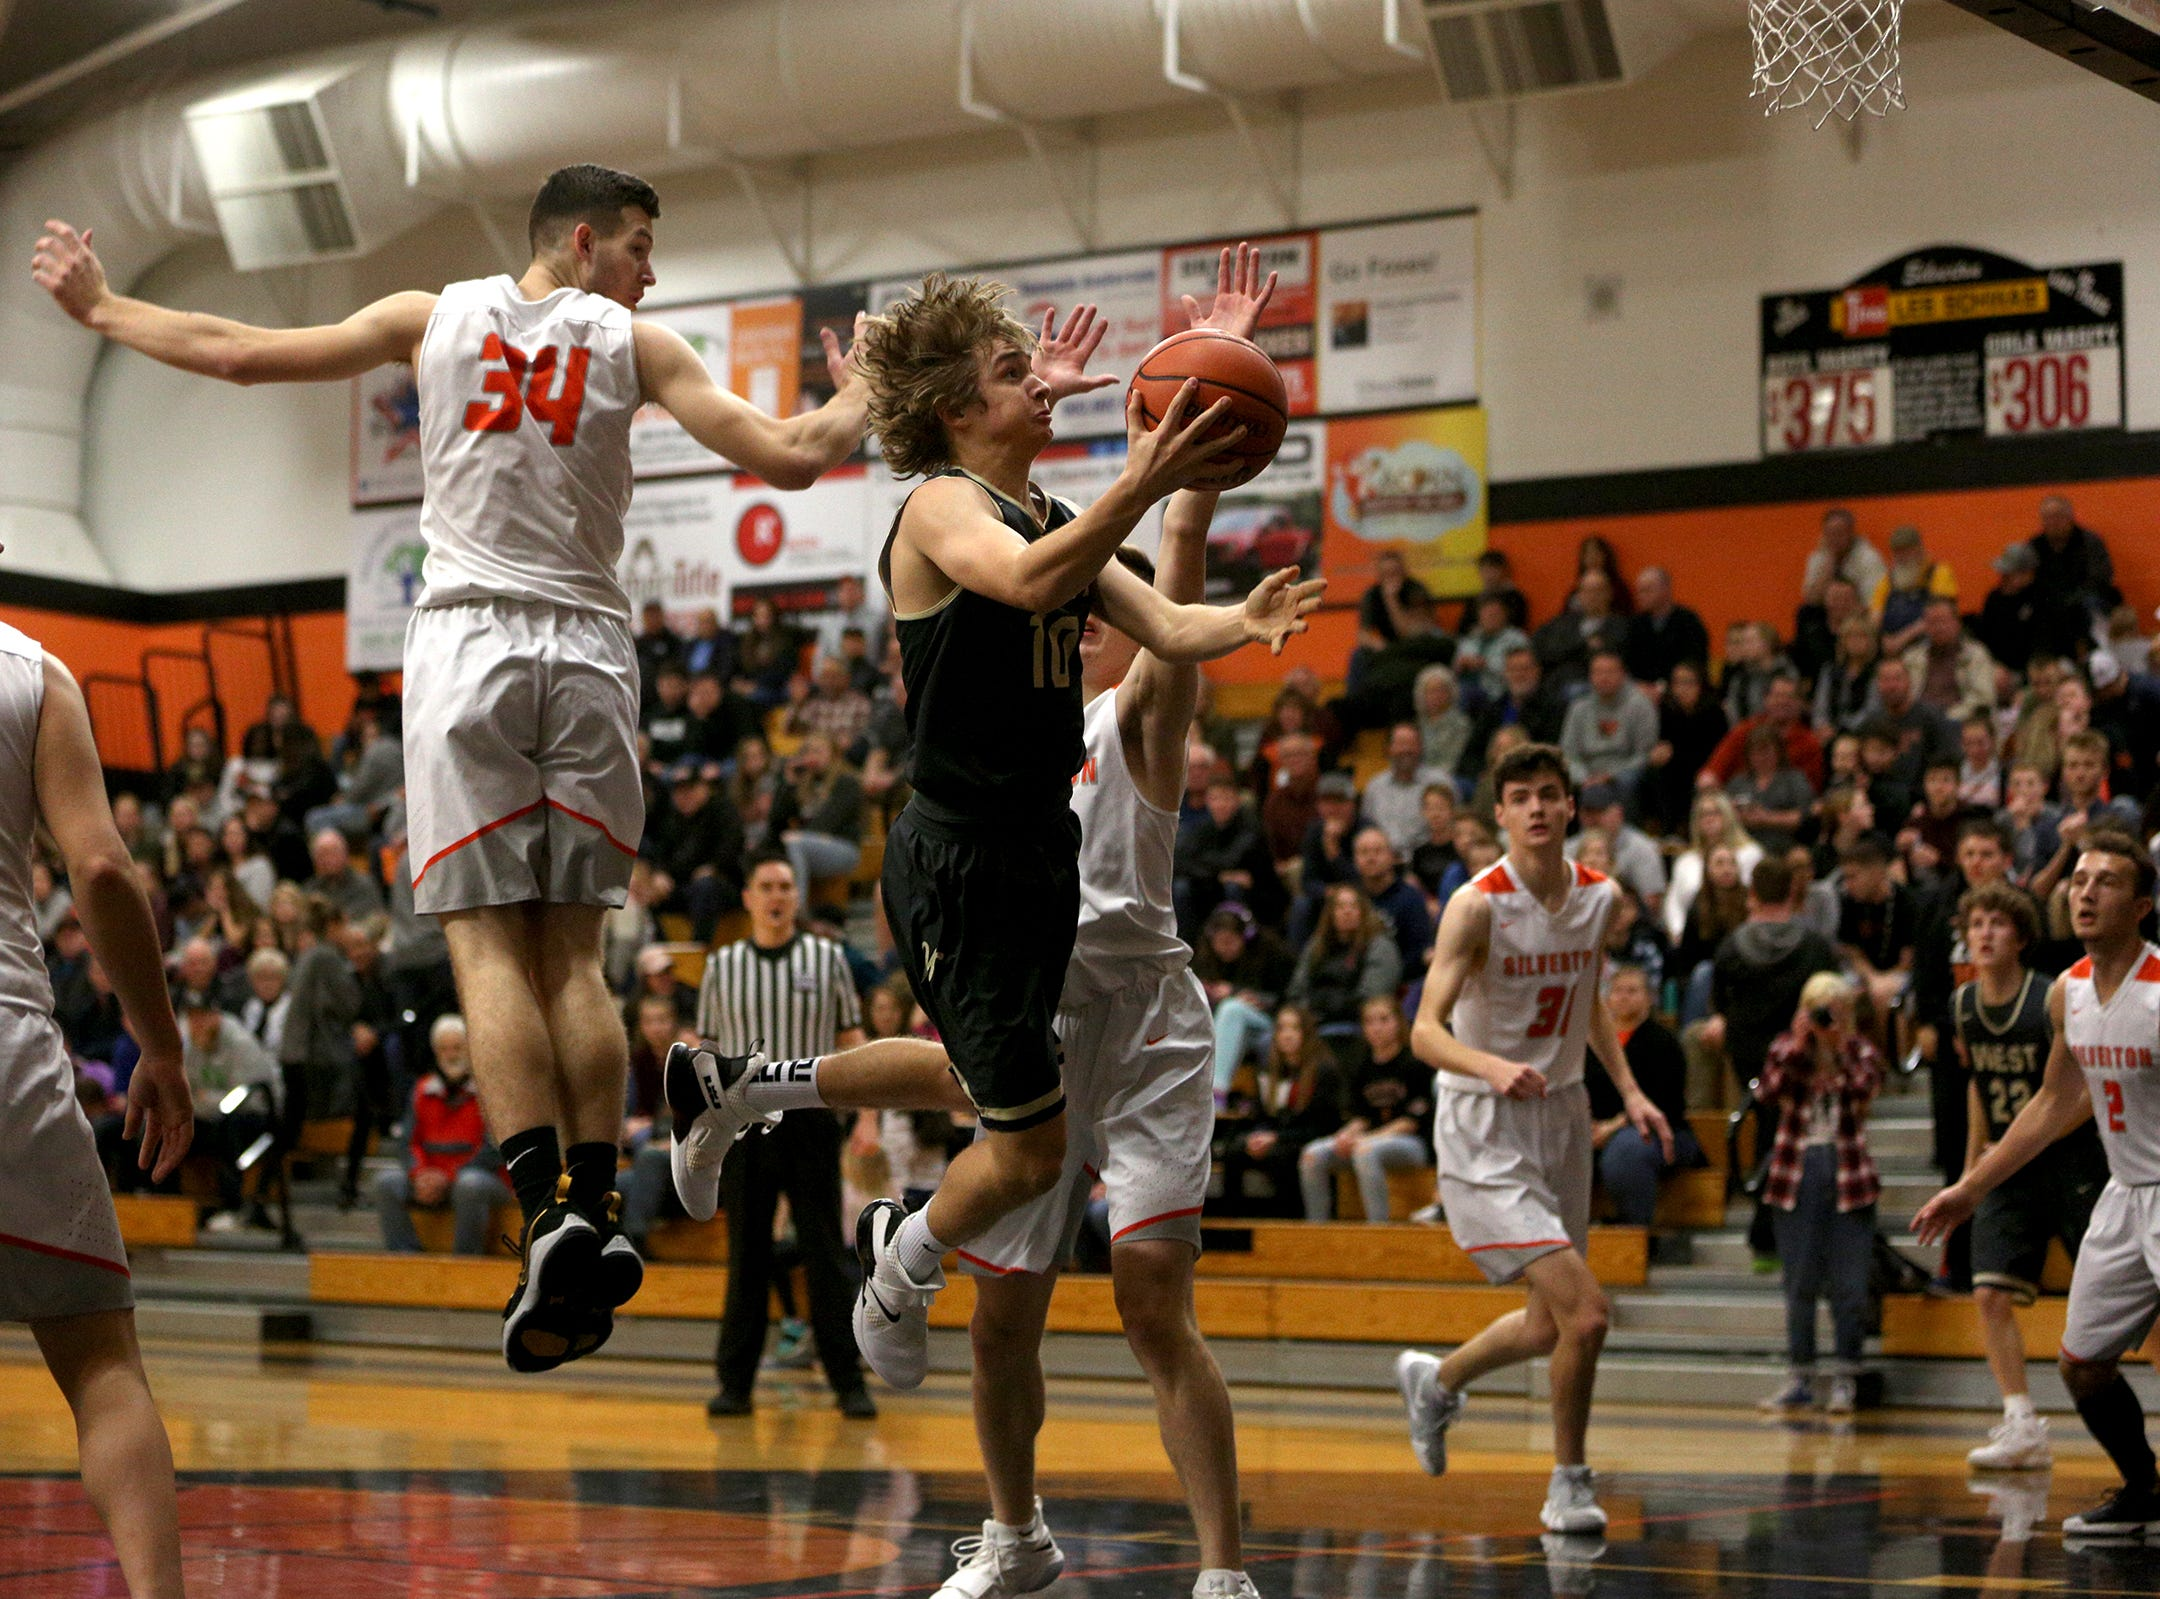 West Albany's Luke Killinger (10) goes up for a layup during the West Albany vs. Silverton High School boys basketball game in Silverton on Friday, Jan. 25, 2019. Killinger finished with 19 points.